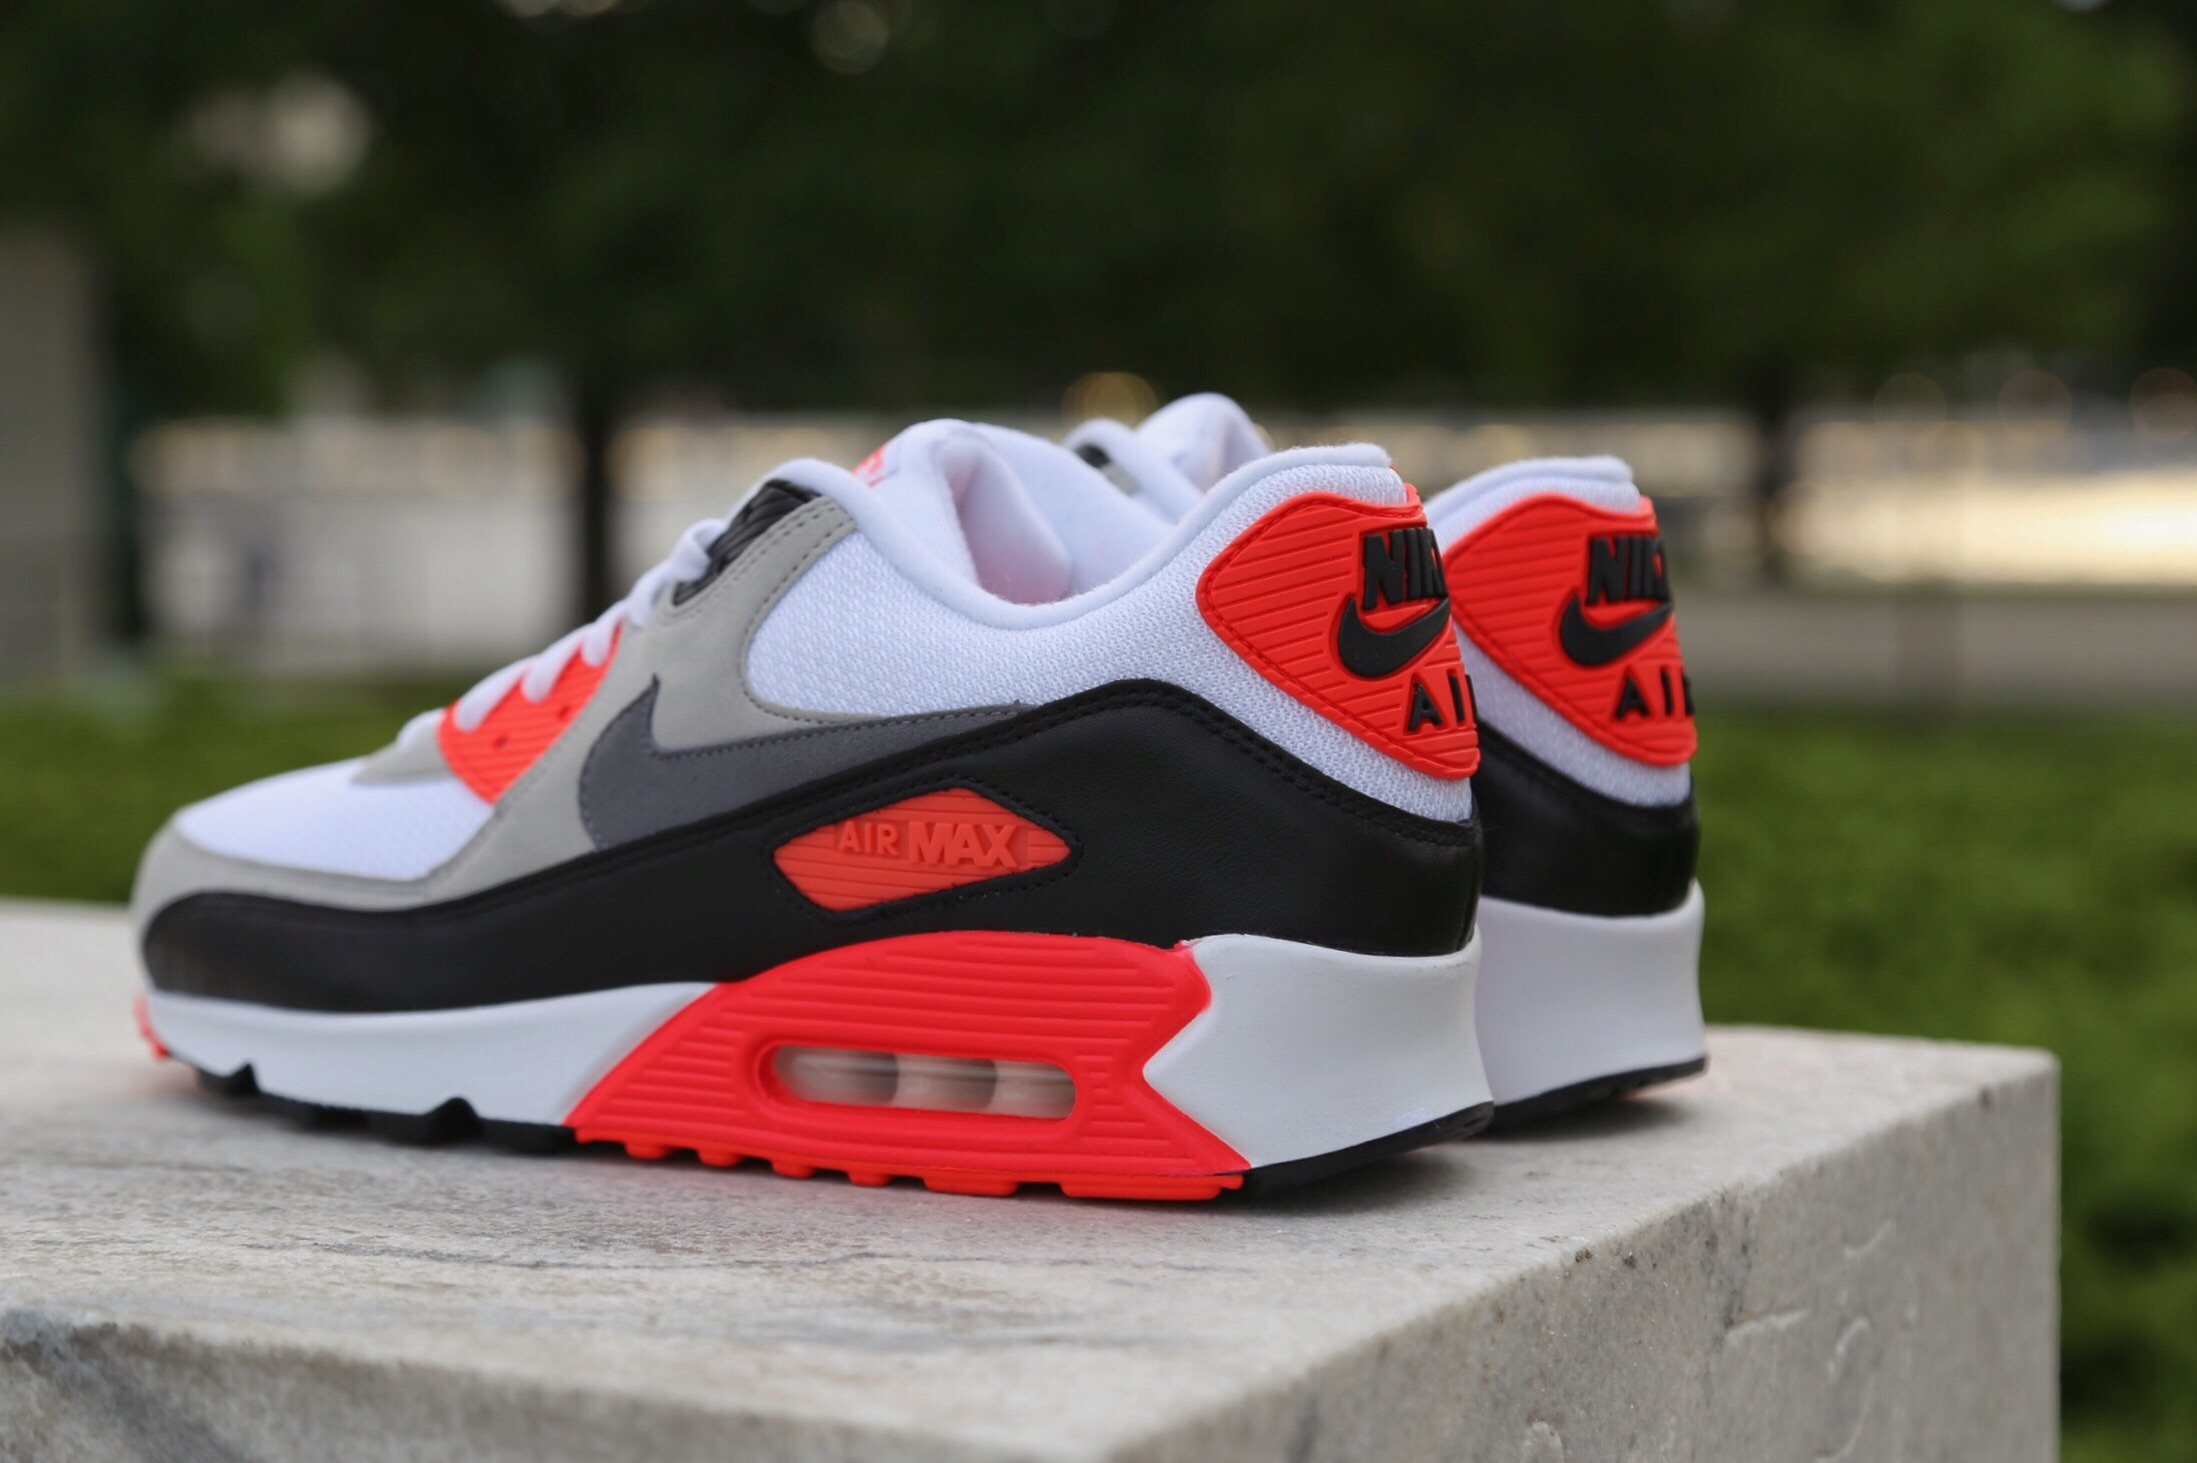 Nike brought back the cult-classic,Infrared Air Max 90 with a limited release taking place back on May 28th.